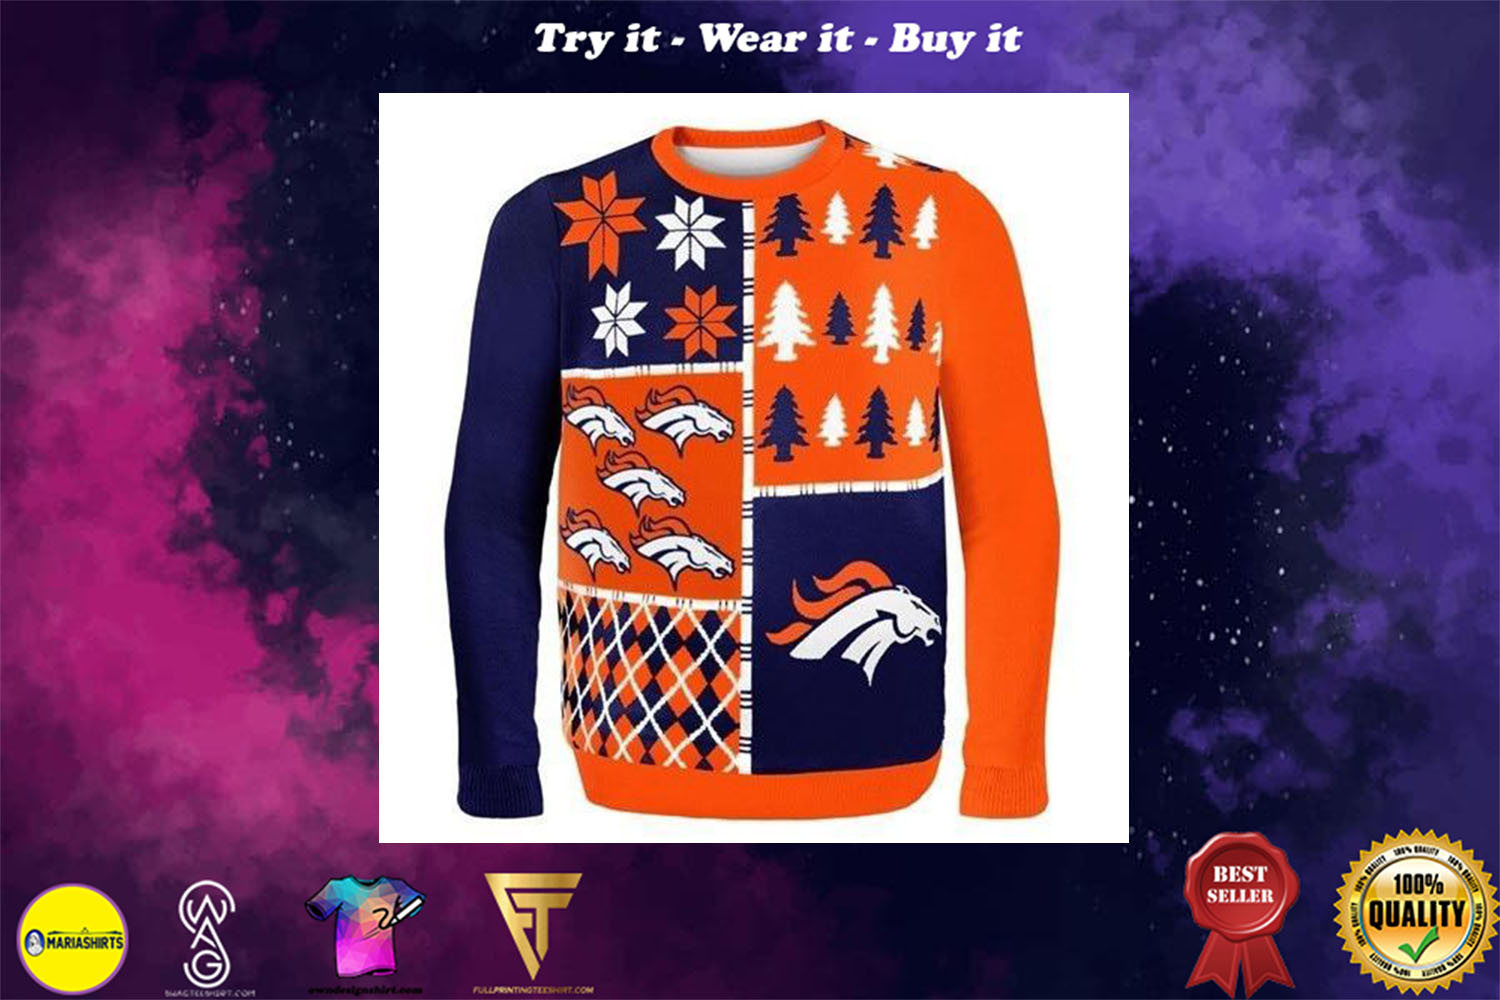 [special edition] denver broncos busy block ugly christmas sweater - maria